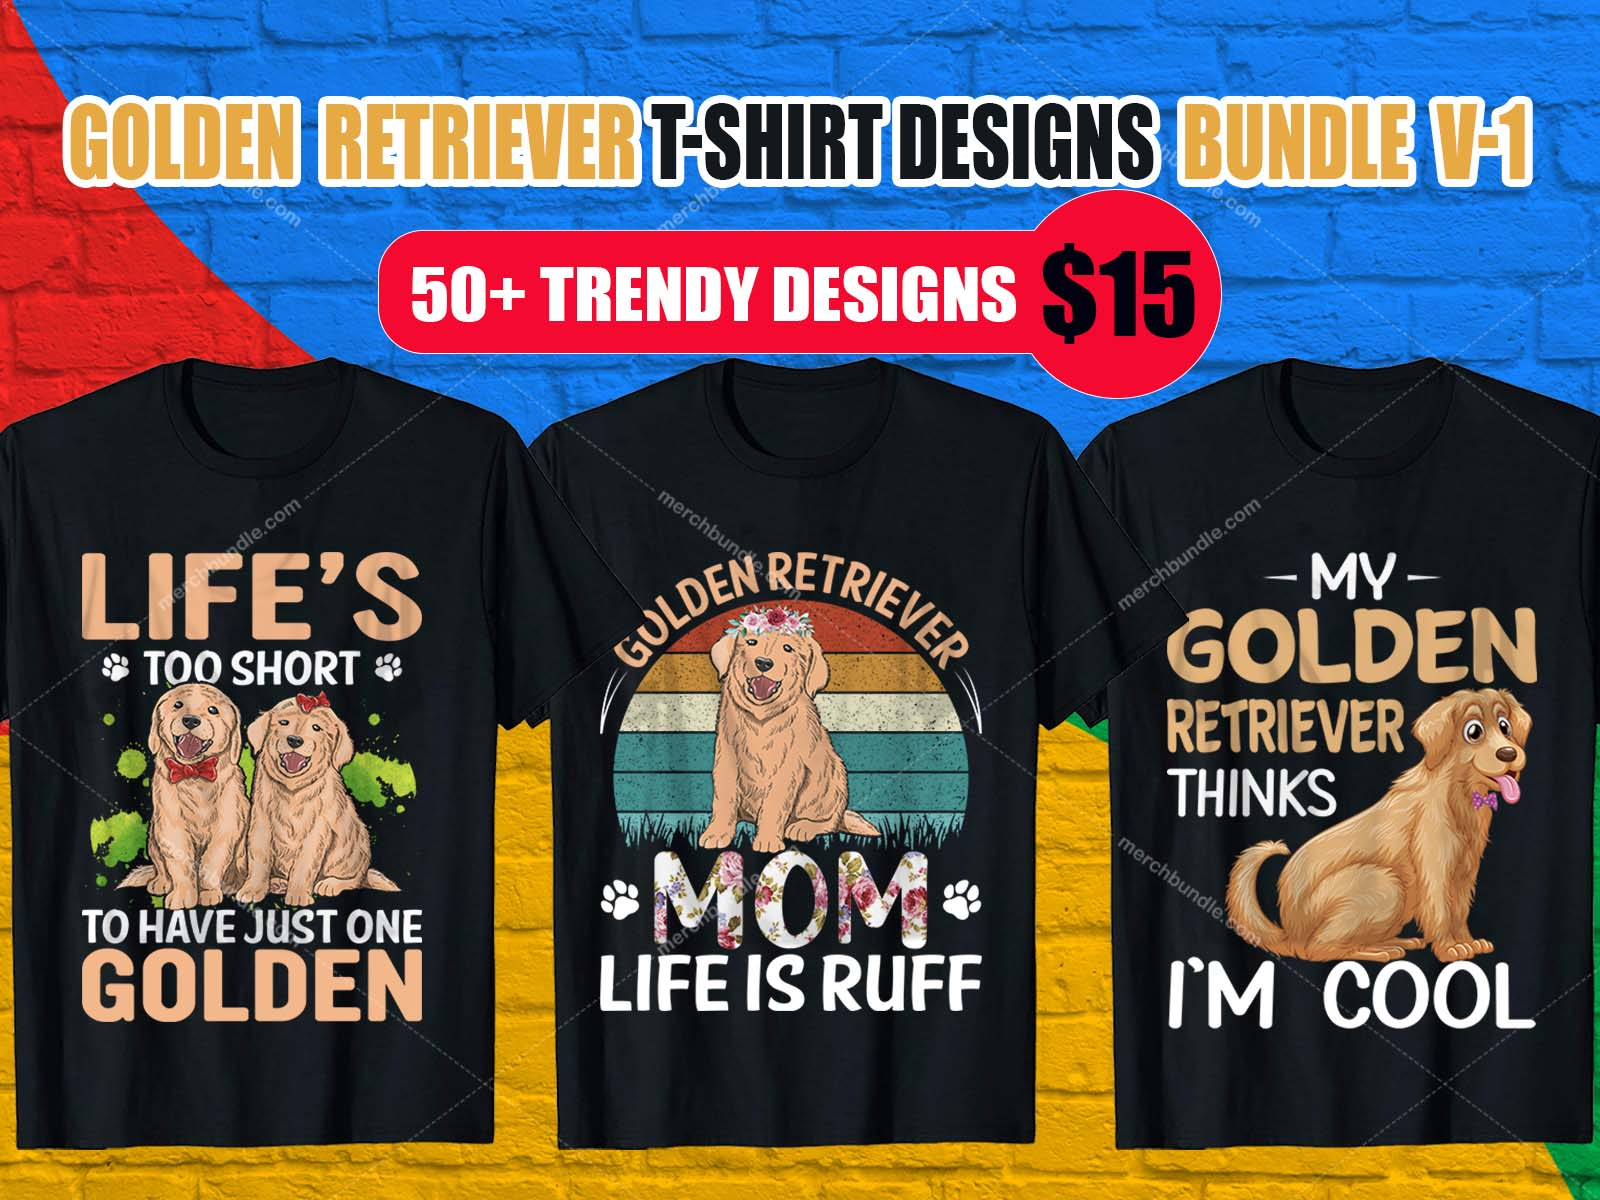 Golden Retriever T-Shirt Designs Bundle